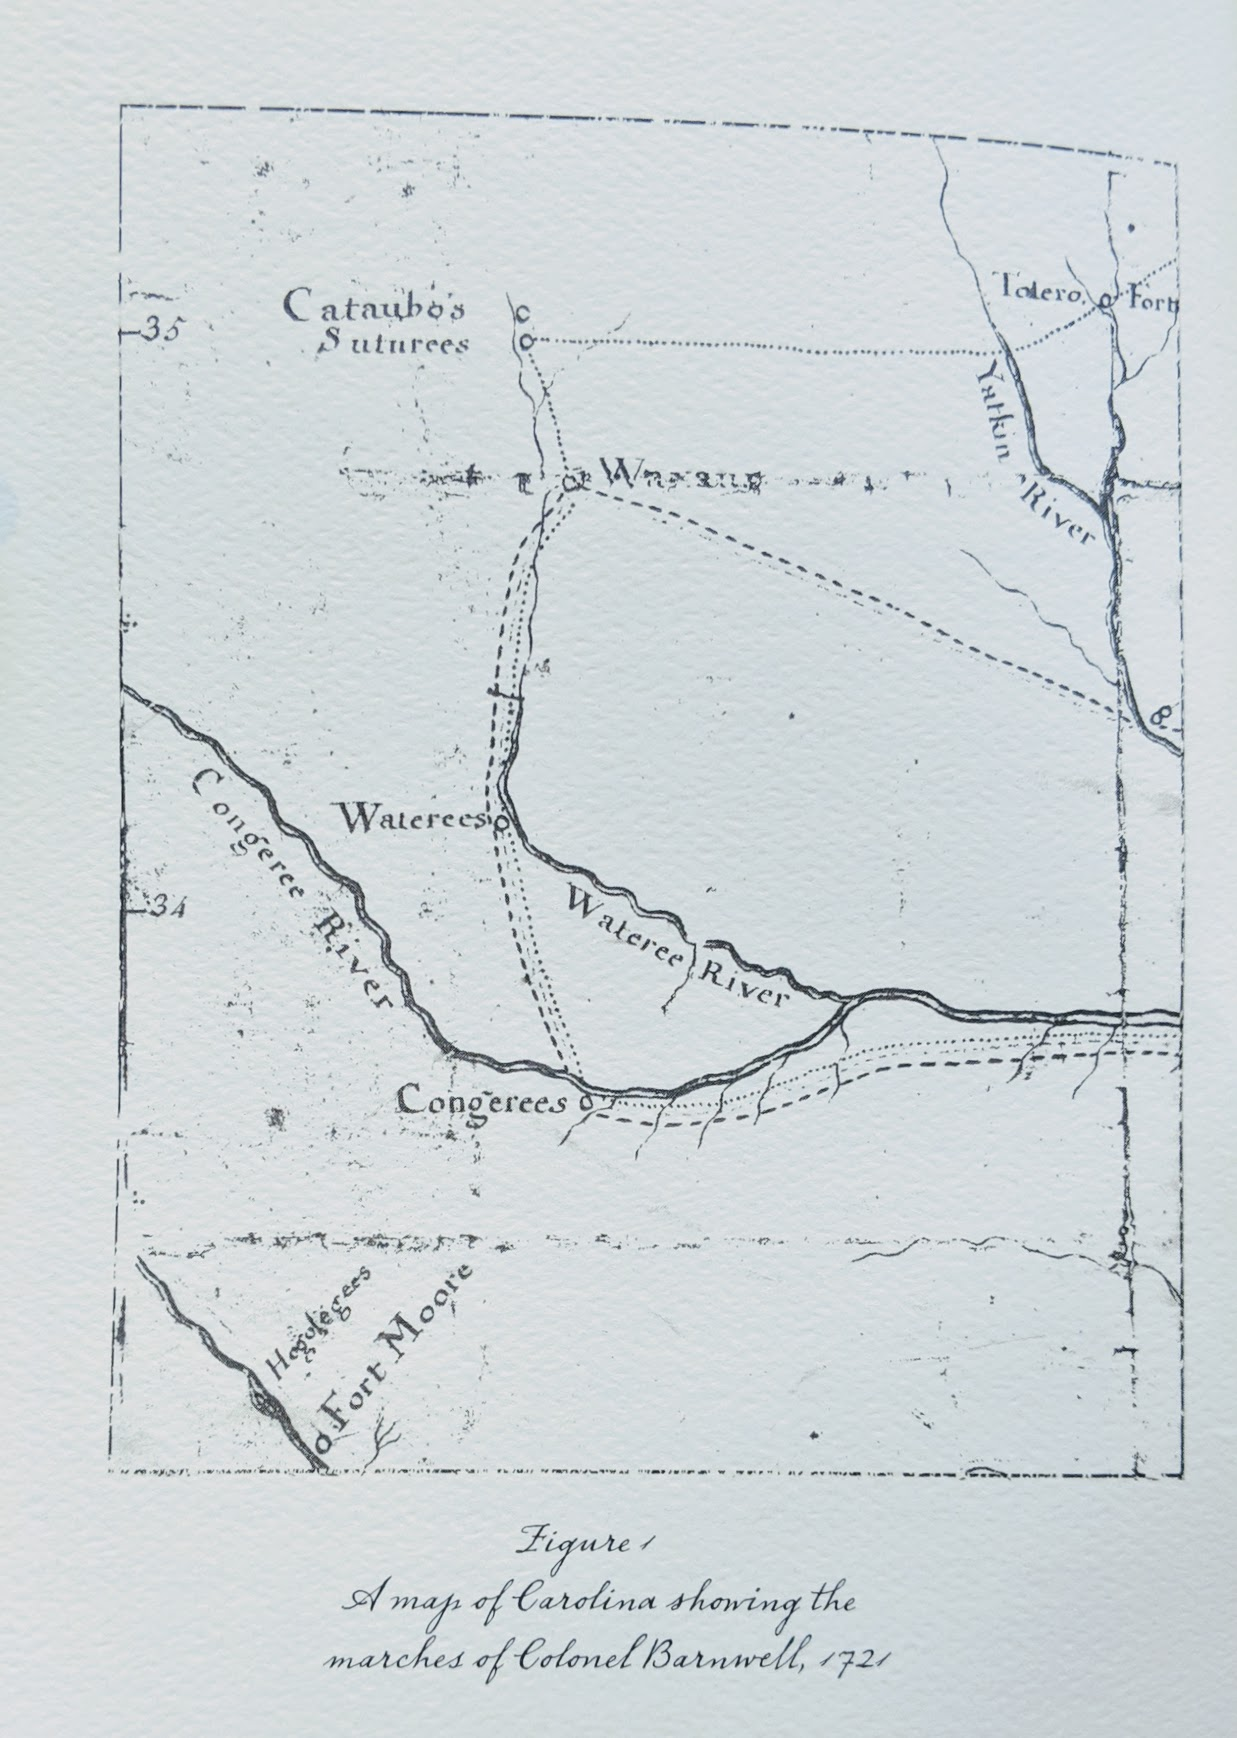 The First Map to… - …accurately represent the backcountry with any sort of detail was drawn by a trader and soldier of fortune, John Barnwell (Figure 1, Left). This map is of particular interest not only because it is the first map to show fairly accu­rate details in the backcountry, but also because John Lawson may have had an early version of it during his travels. Barnwell and the other principles involved with Lawson and the map were all military mercenaries and active Indian traders. It is quite likely they would have had a sketch map with the location of their trade partners. It is equally reasonable to presume that, if they had a map, they would have shared it with the young man they sent into the wilds.